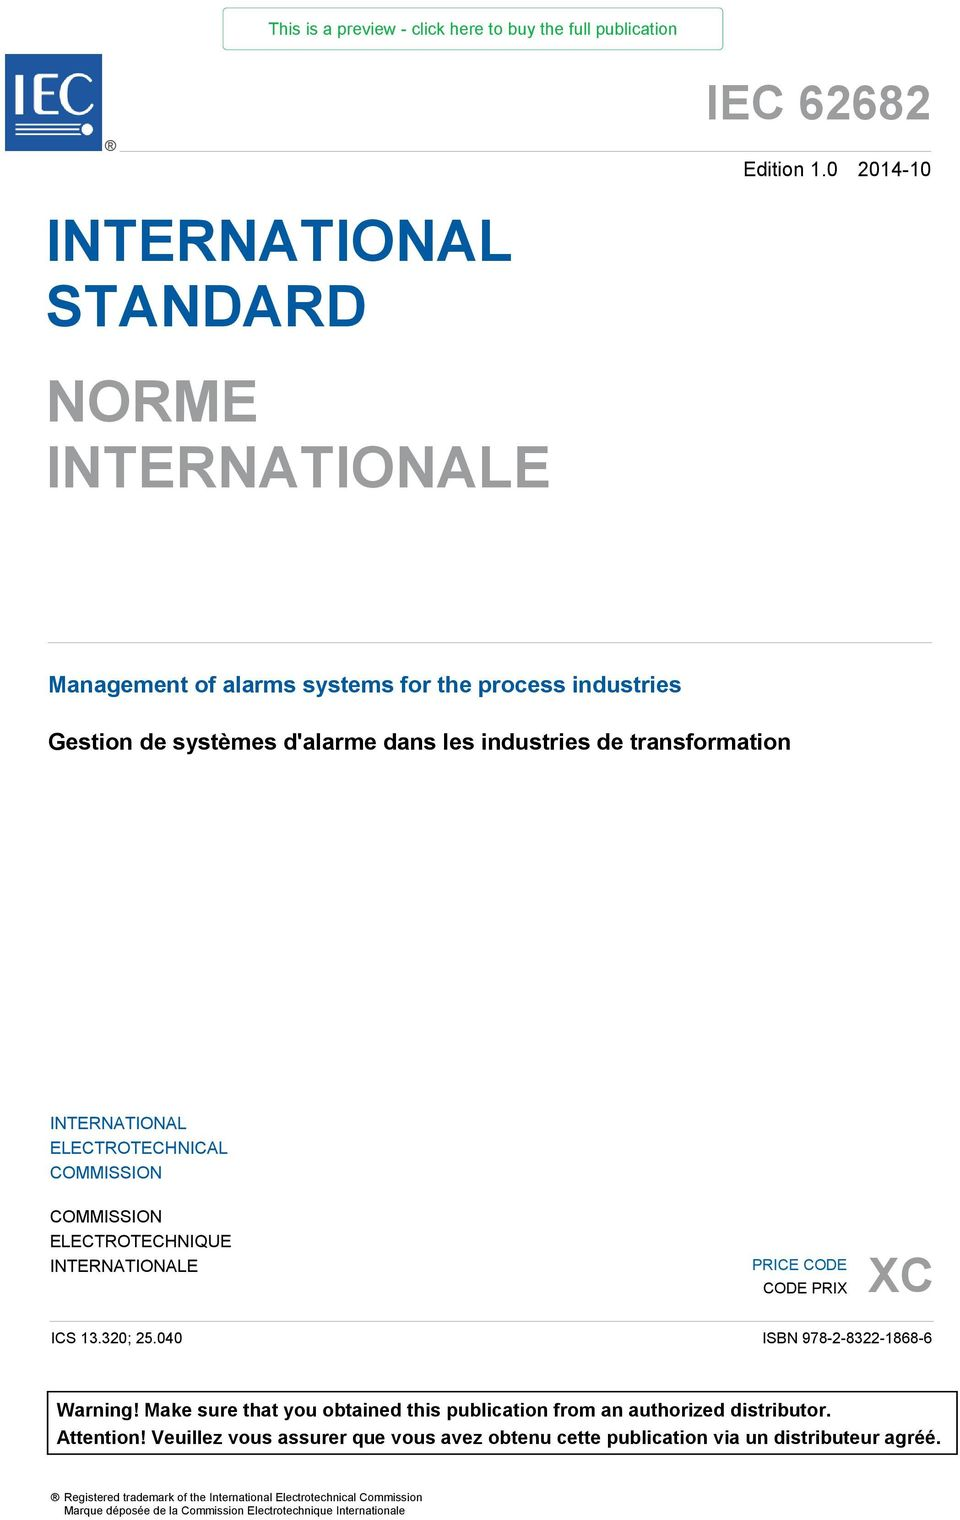 transformation INTERNATIONAL ELECTROTECHNICAL COMMISSION COMMISSION ELECTROTECHNIQUE INTERNATIONALE PRICE CODE CODE PRIX XC ICS 13.320; 25.